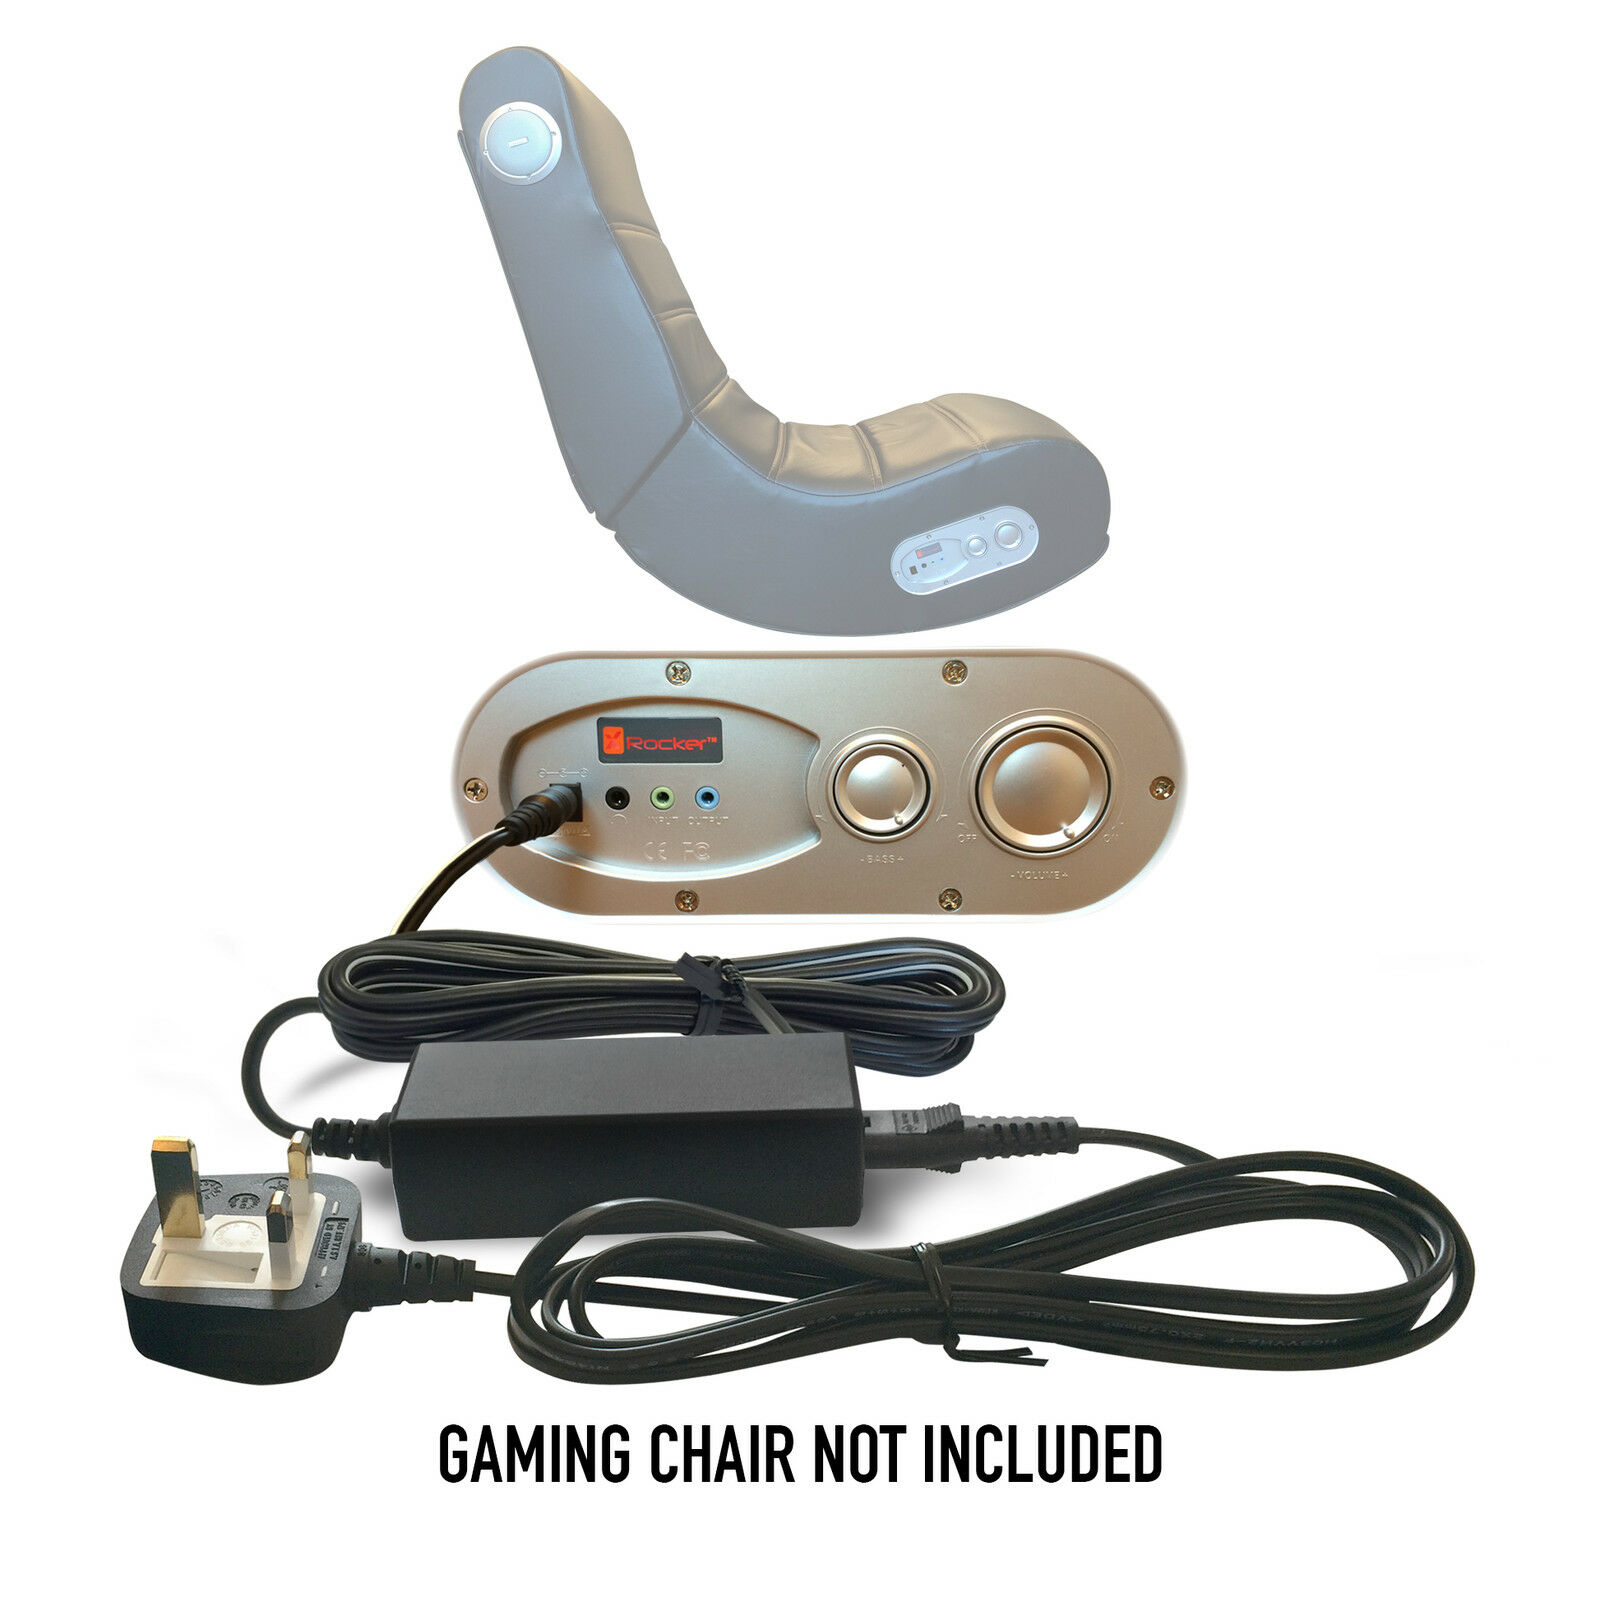 v rocker se gaming chair low profile folding 9v 1a x uk ac dc power supply mains